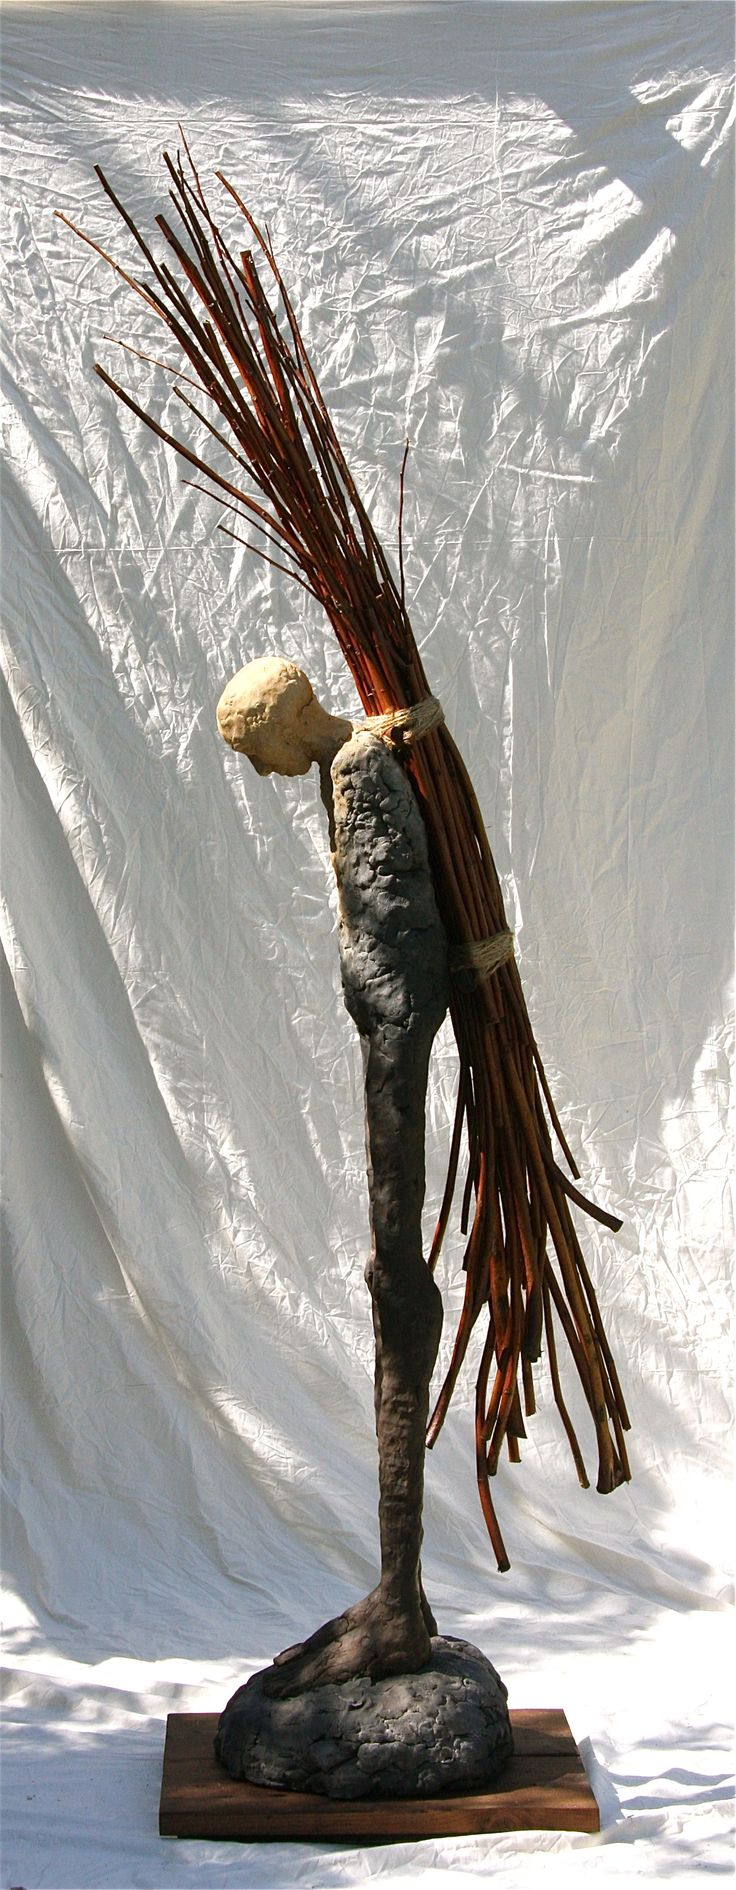 "To carry the old forest burdens. by William Catling, c. 2010 Ceramic, wood and twine 108"" x 18"" x 30"""